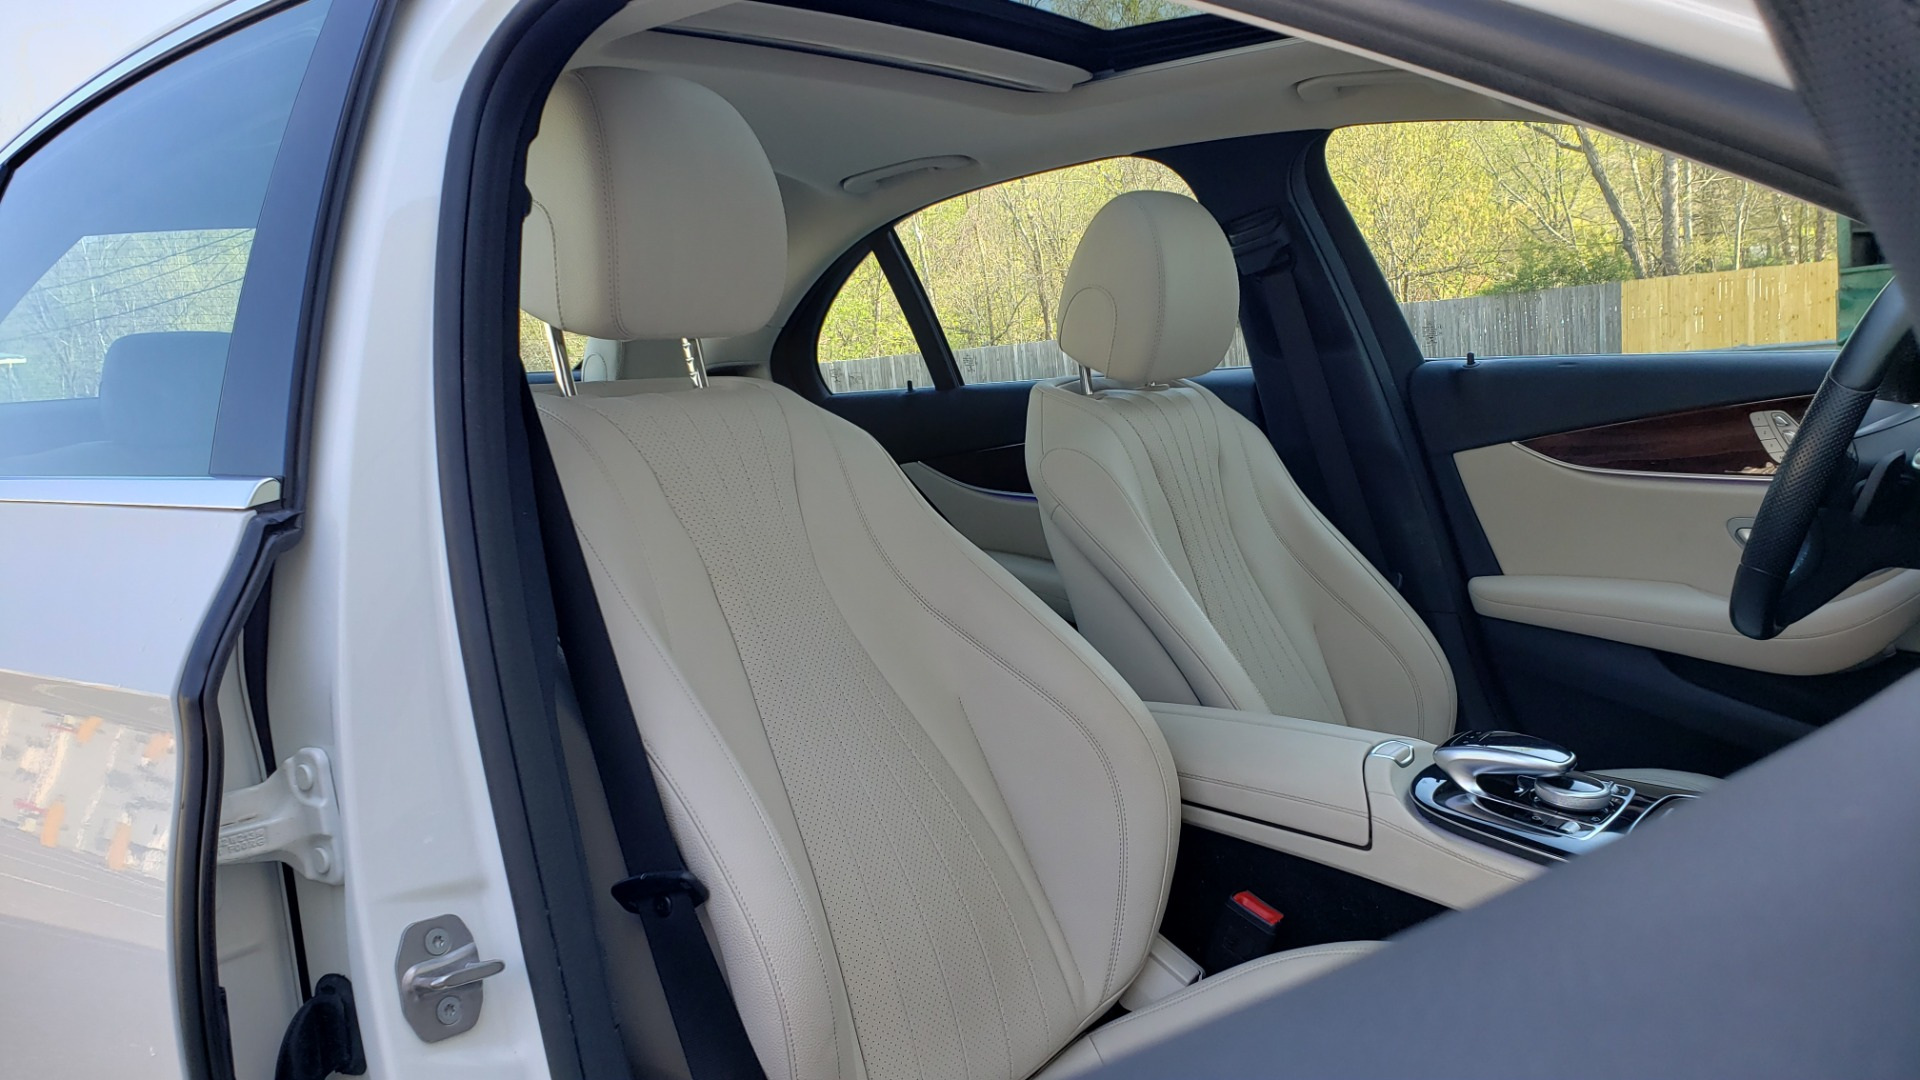 Used 2017 Mercedes-Benz E-Class E 300 PREMIUM / RWD / NAV / SNF / PARKING PILOT / REARVIEW / BURMESTER for sale Sold at Formula Imports in Charlotte NC 28227 59